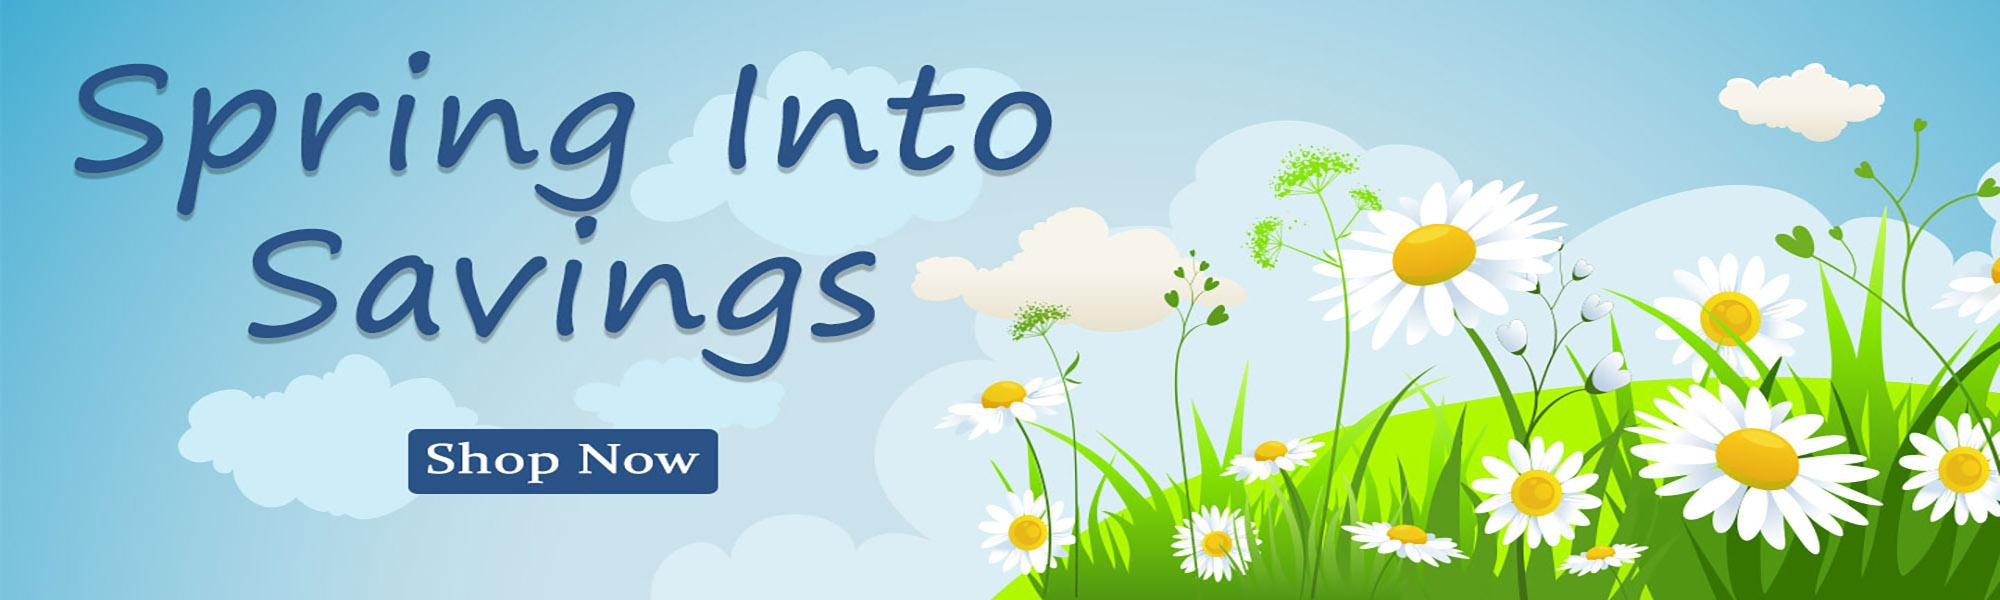 Spring Into Savings Event - Shop Now